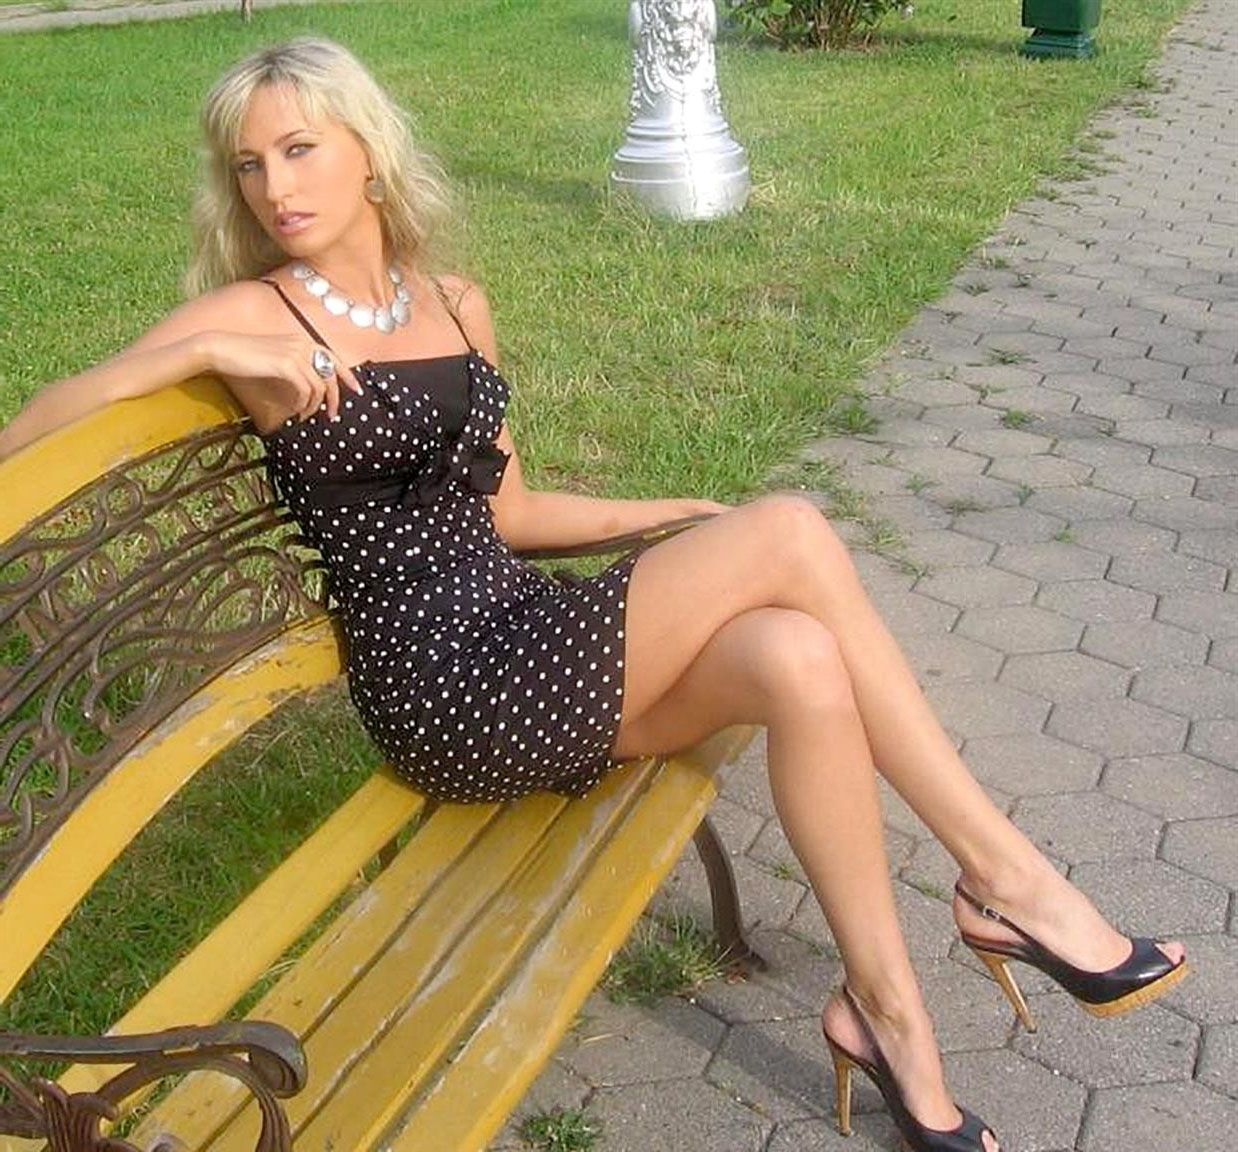 mint spring cougars dating site Free online cougar dating site for women looking to date younger men in houston, tx at idating4youcom register now, use it for free for speed dating.